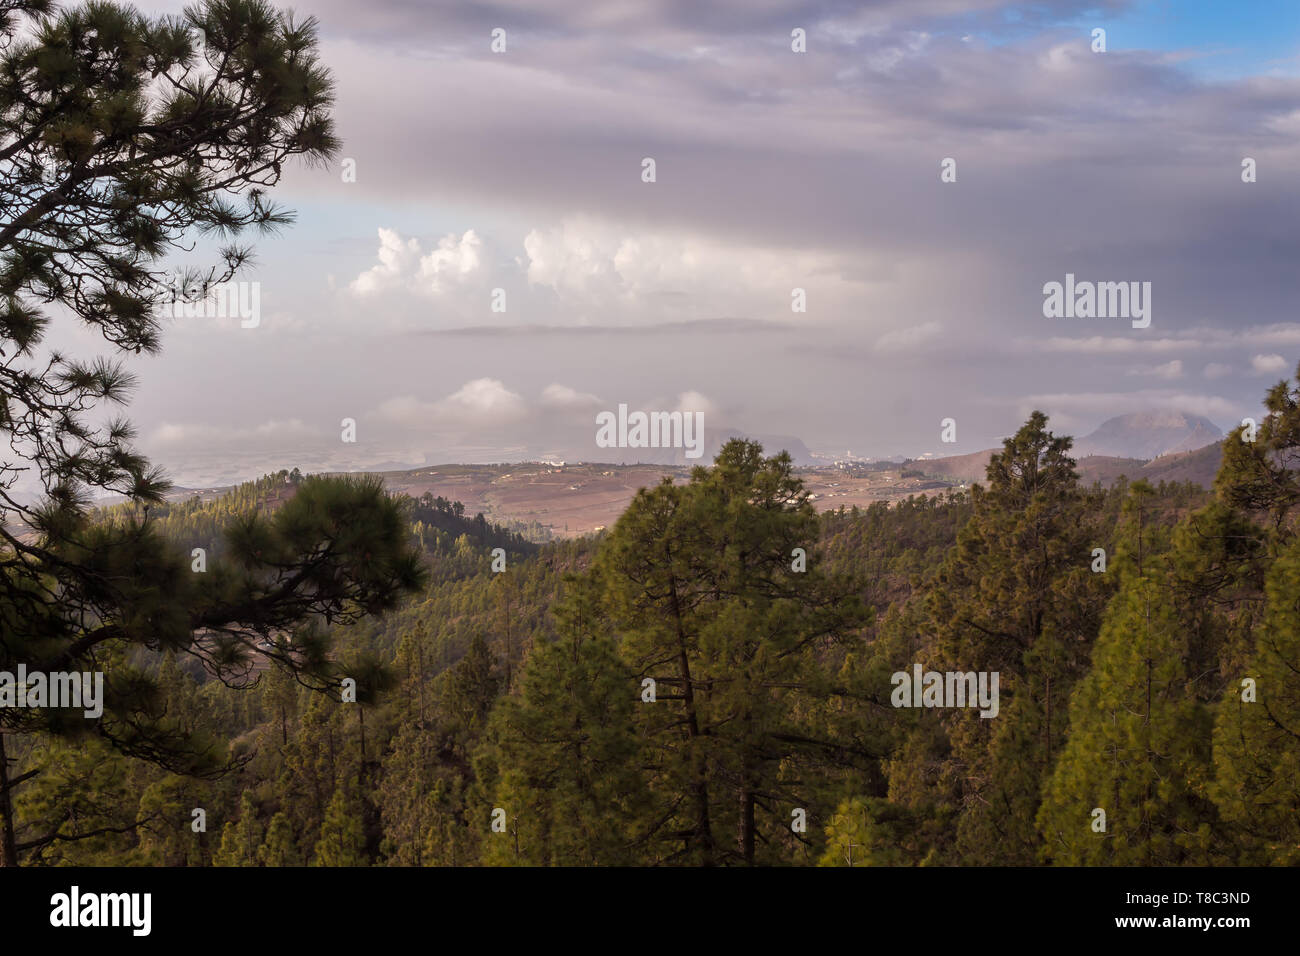 Trees on the hills of the Teide National Park. View on the coast of the island. Another island La Gomera on the horizon, among the morning clouds. Ten - Stock Image